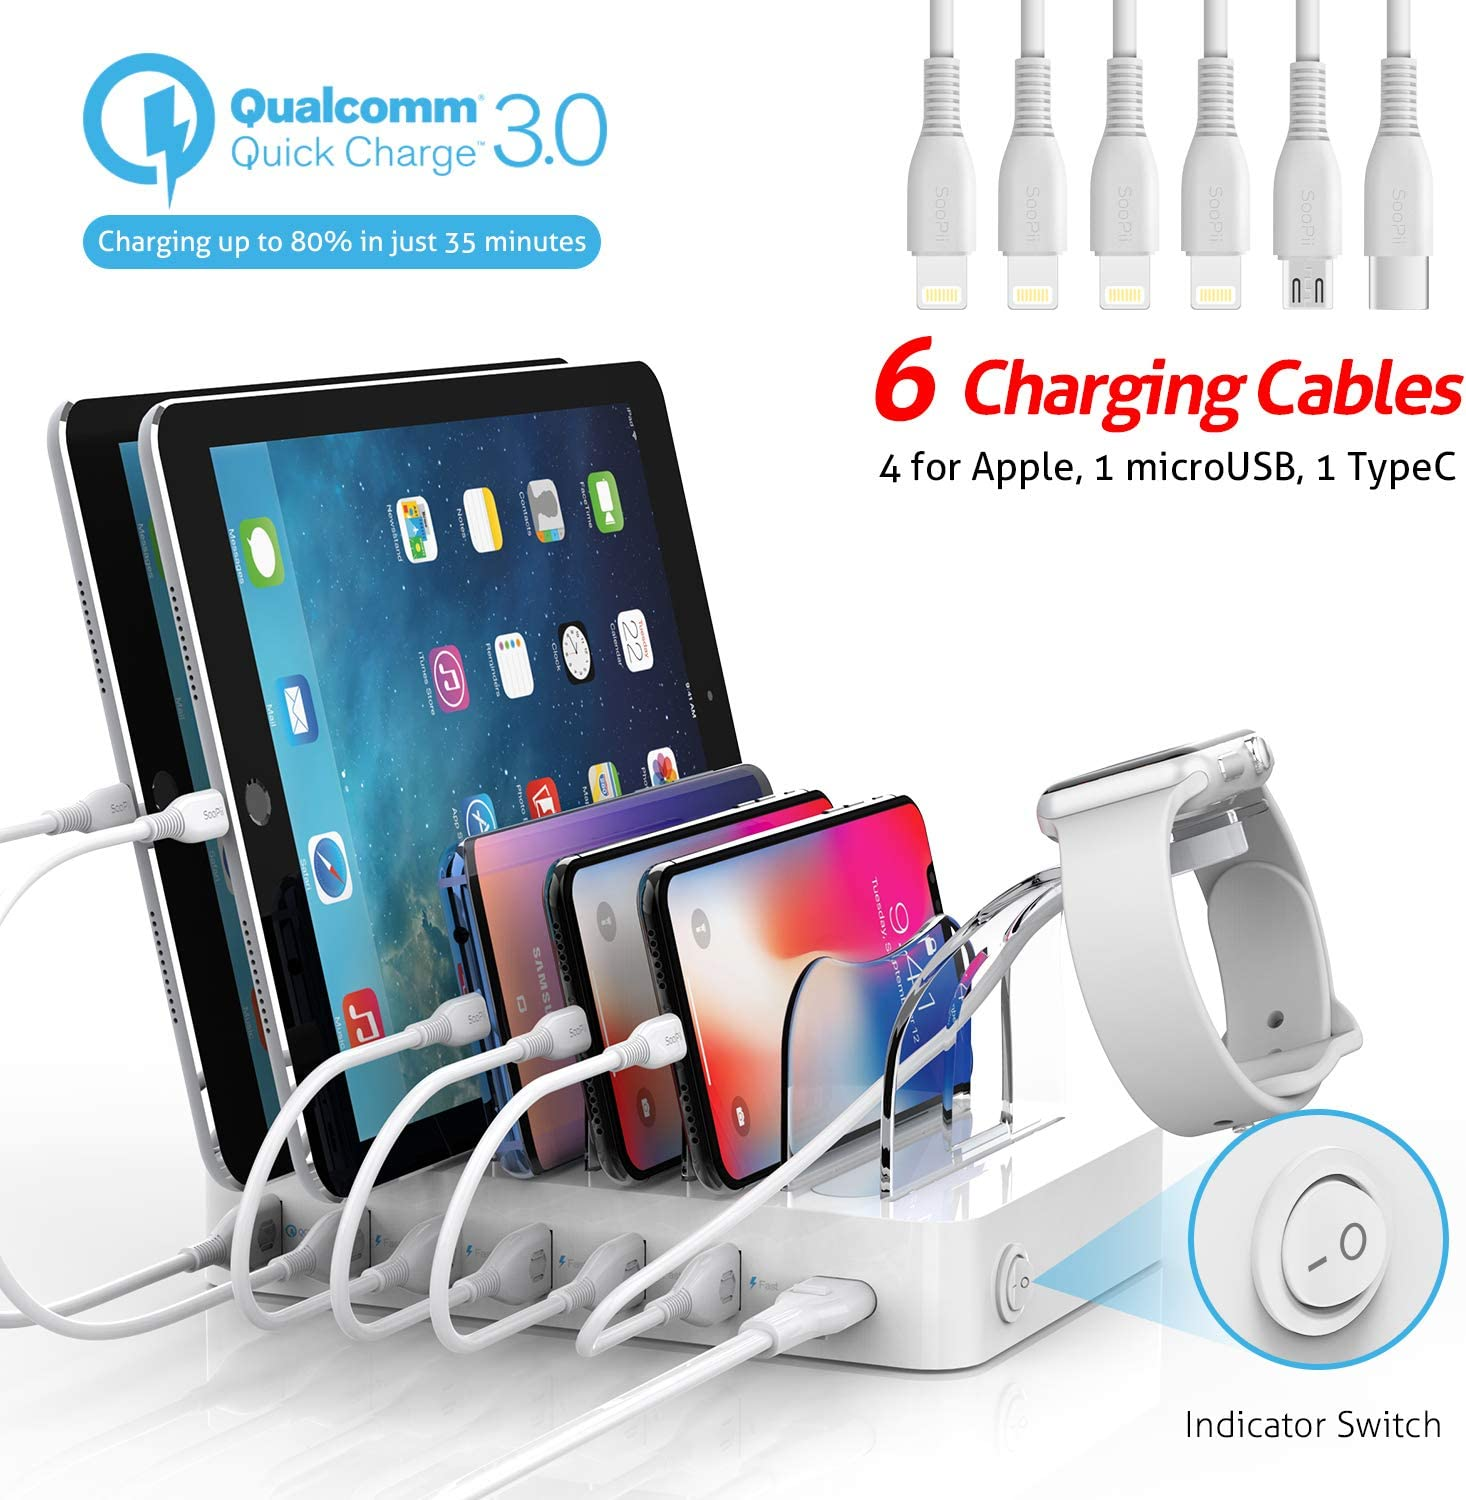 Soopii Quick Charge 3.0 60W/12A 6-Port USB Charging Station Organizer for Multiple Devices, 6 Short Mixed Cables Included, I Watch Holder,for Phones, Tablets, and Other Electronics,White